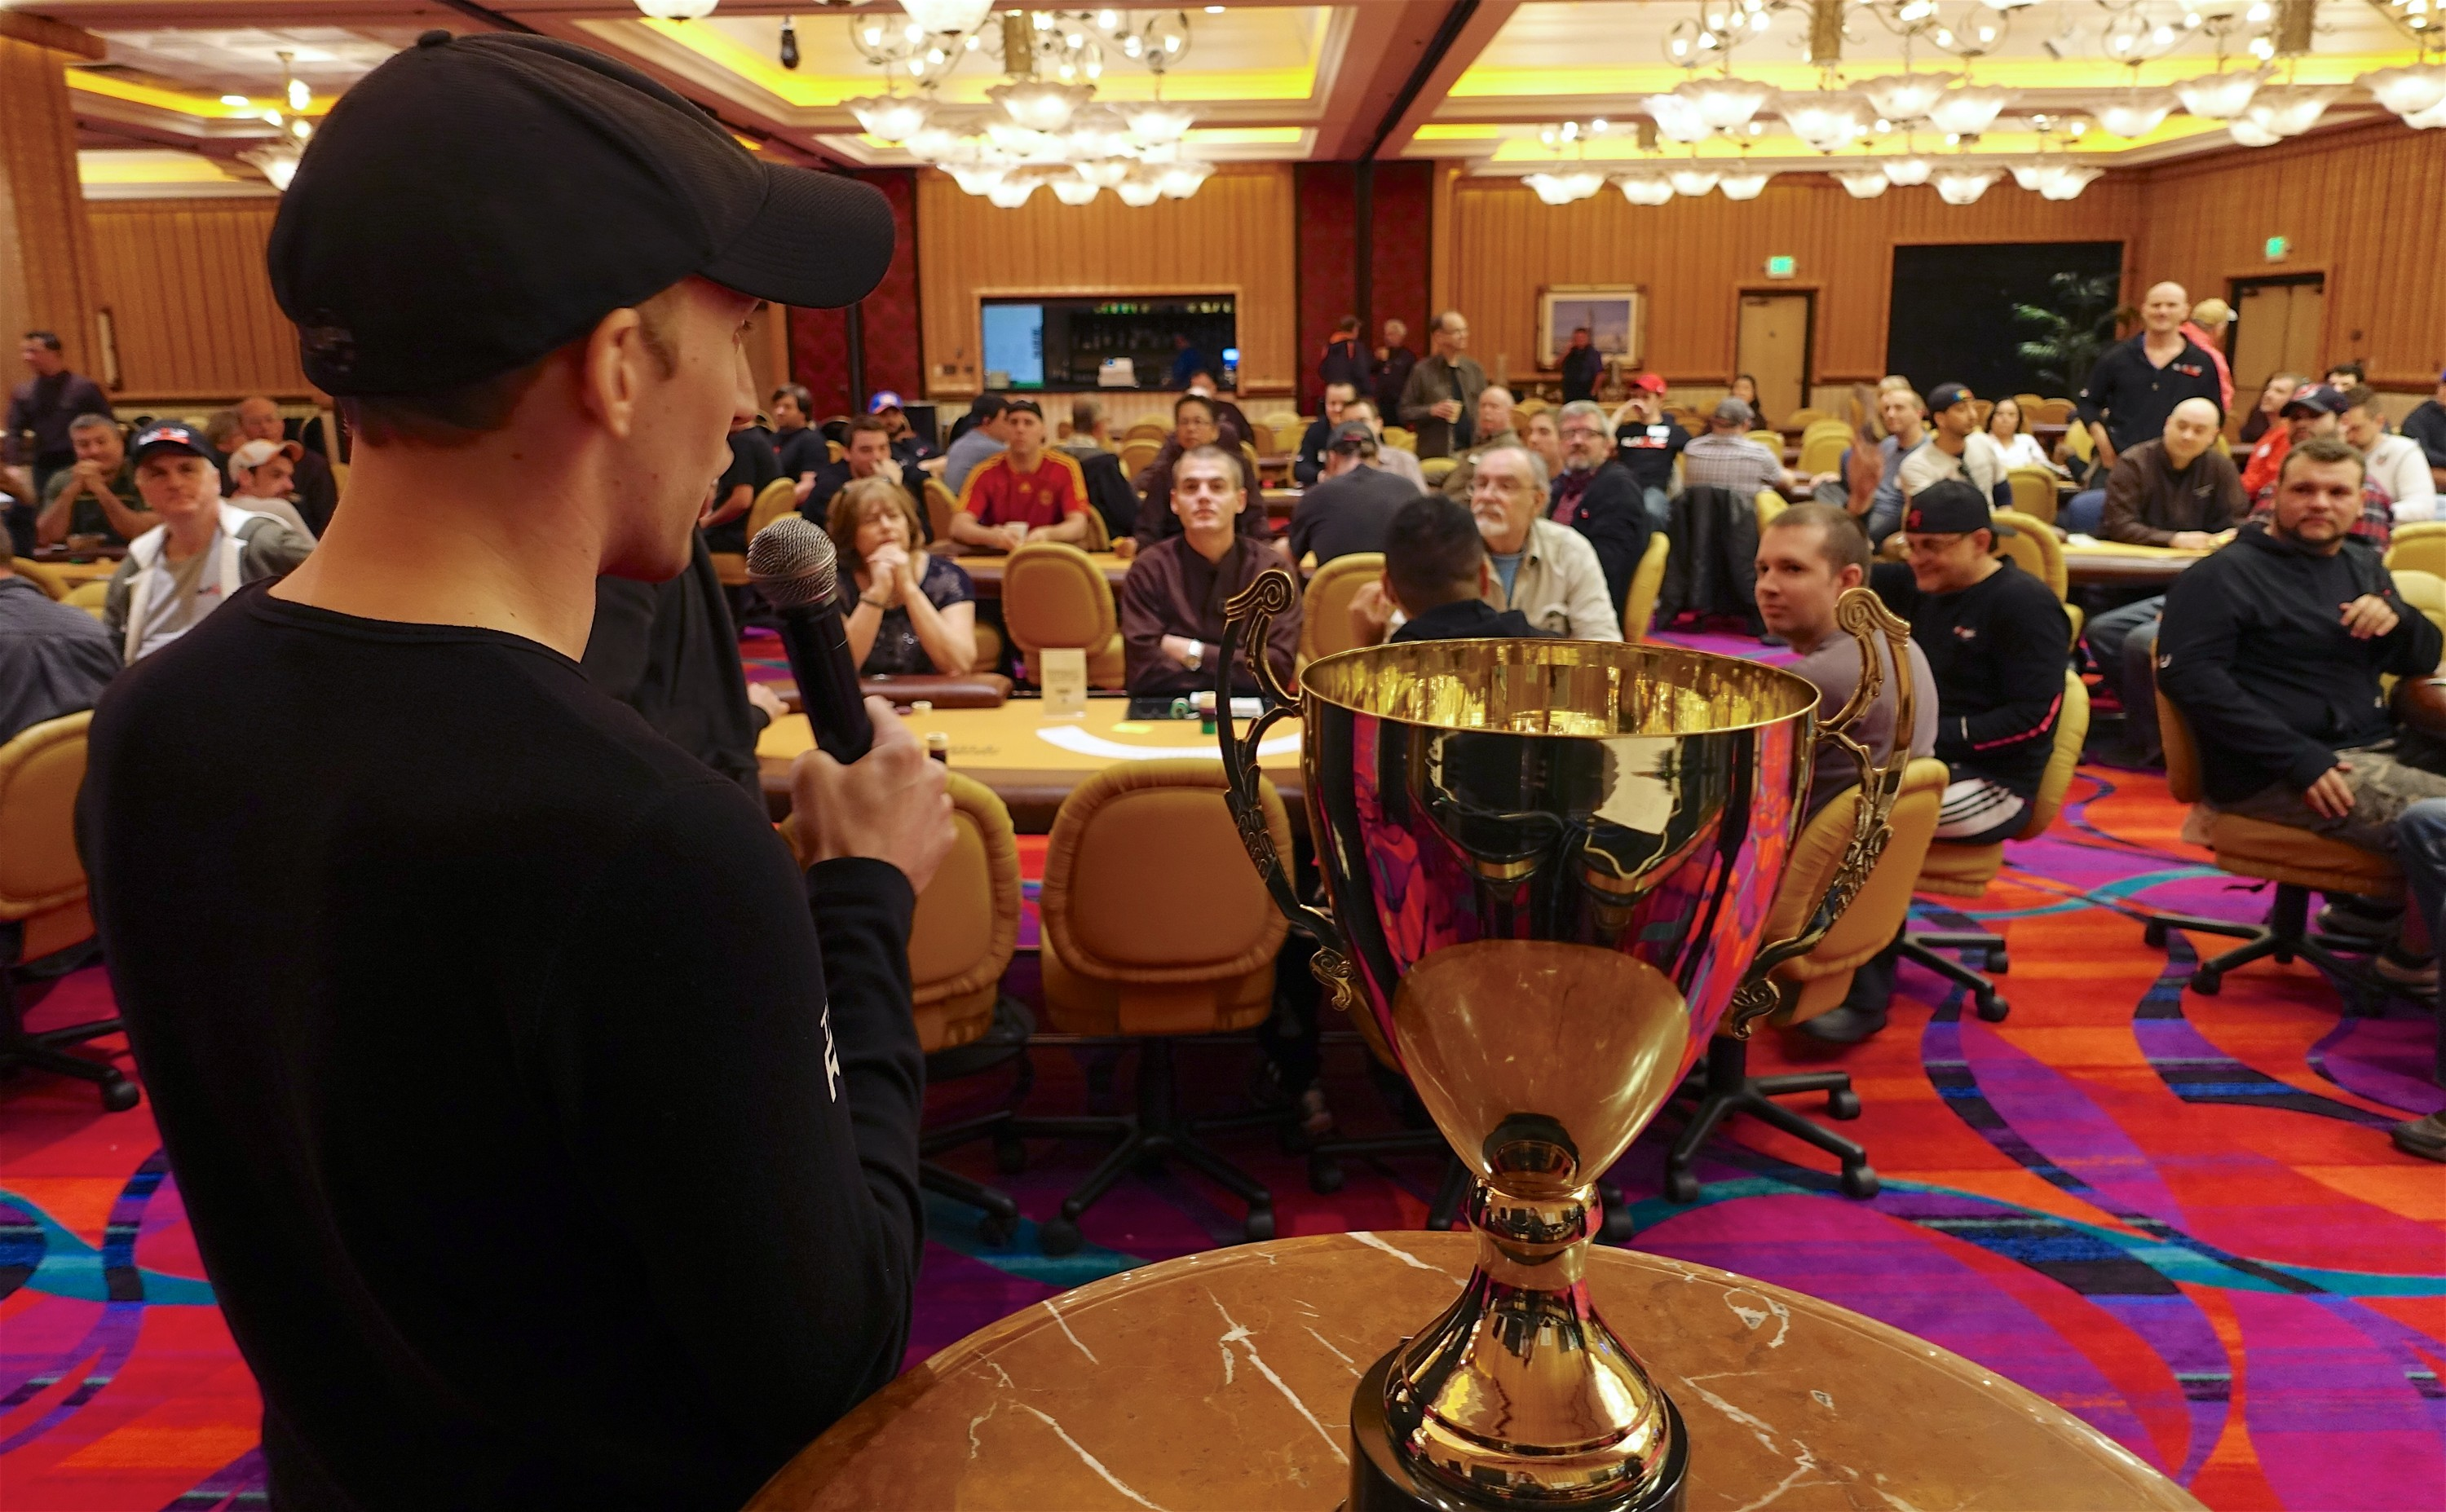 Jason Somerville intros the first event